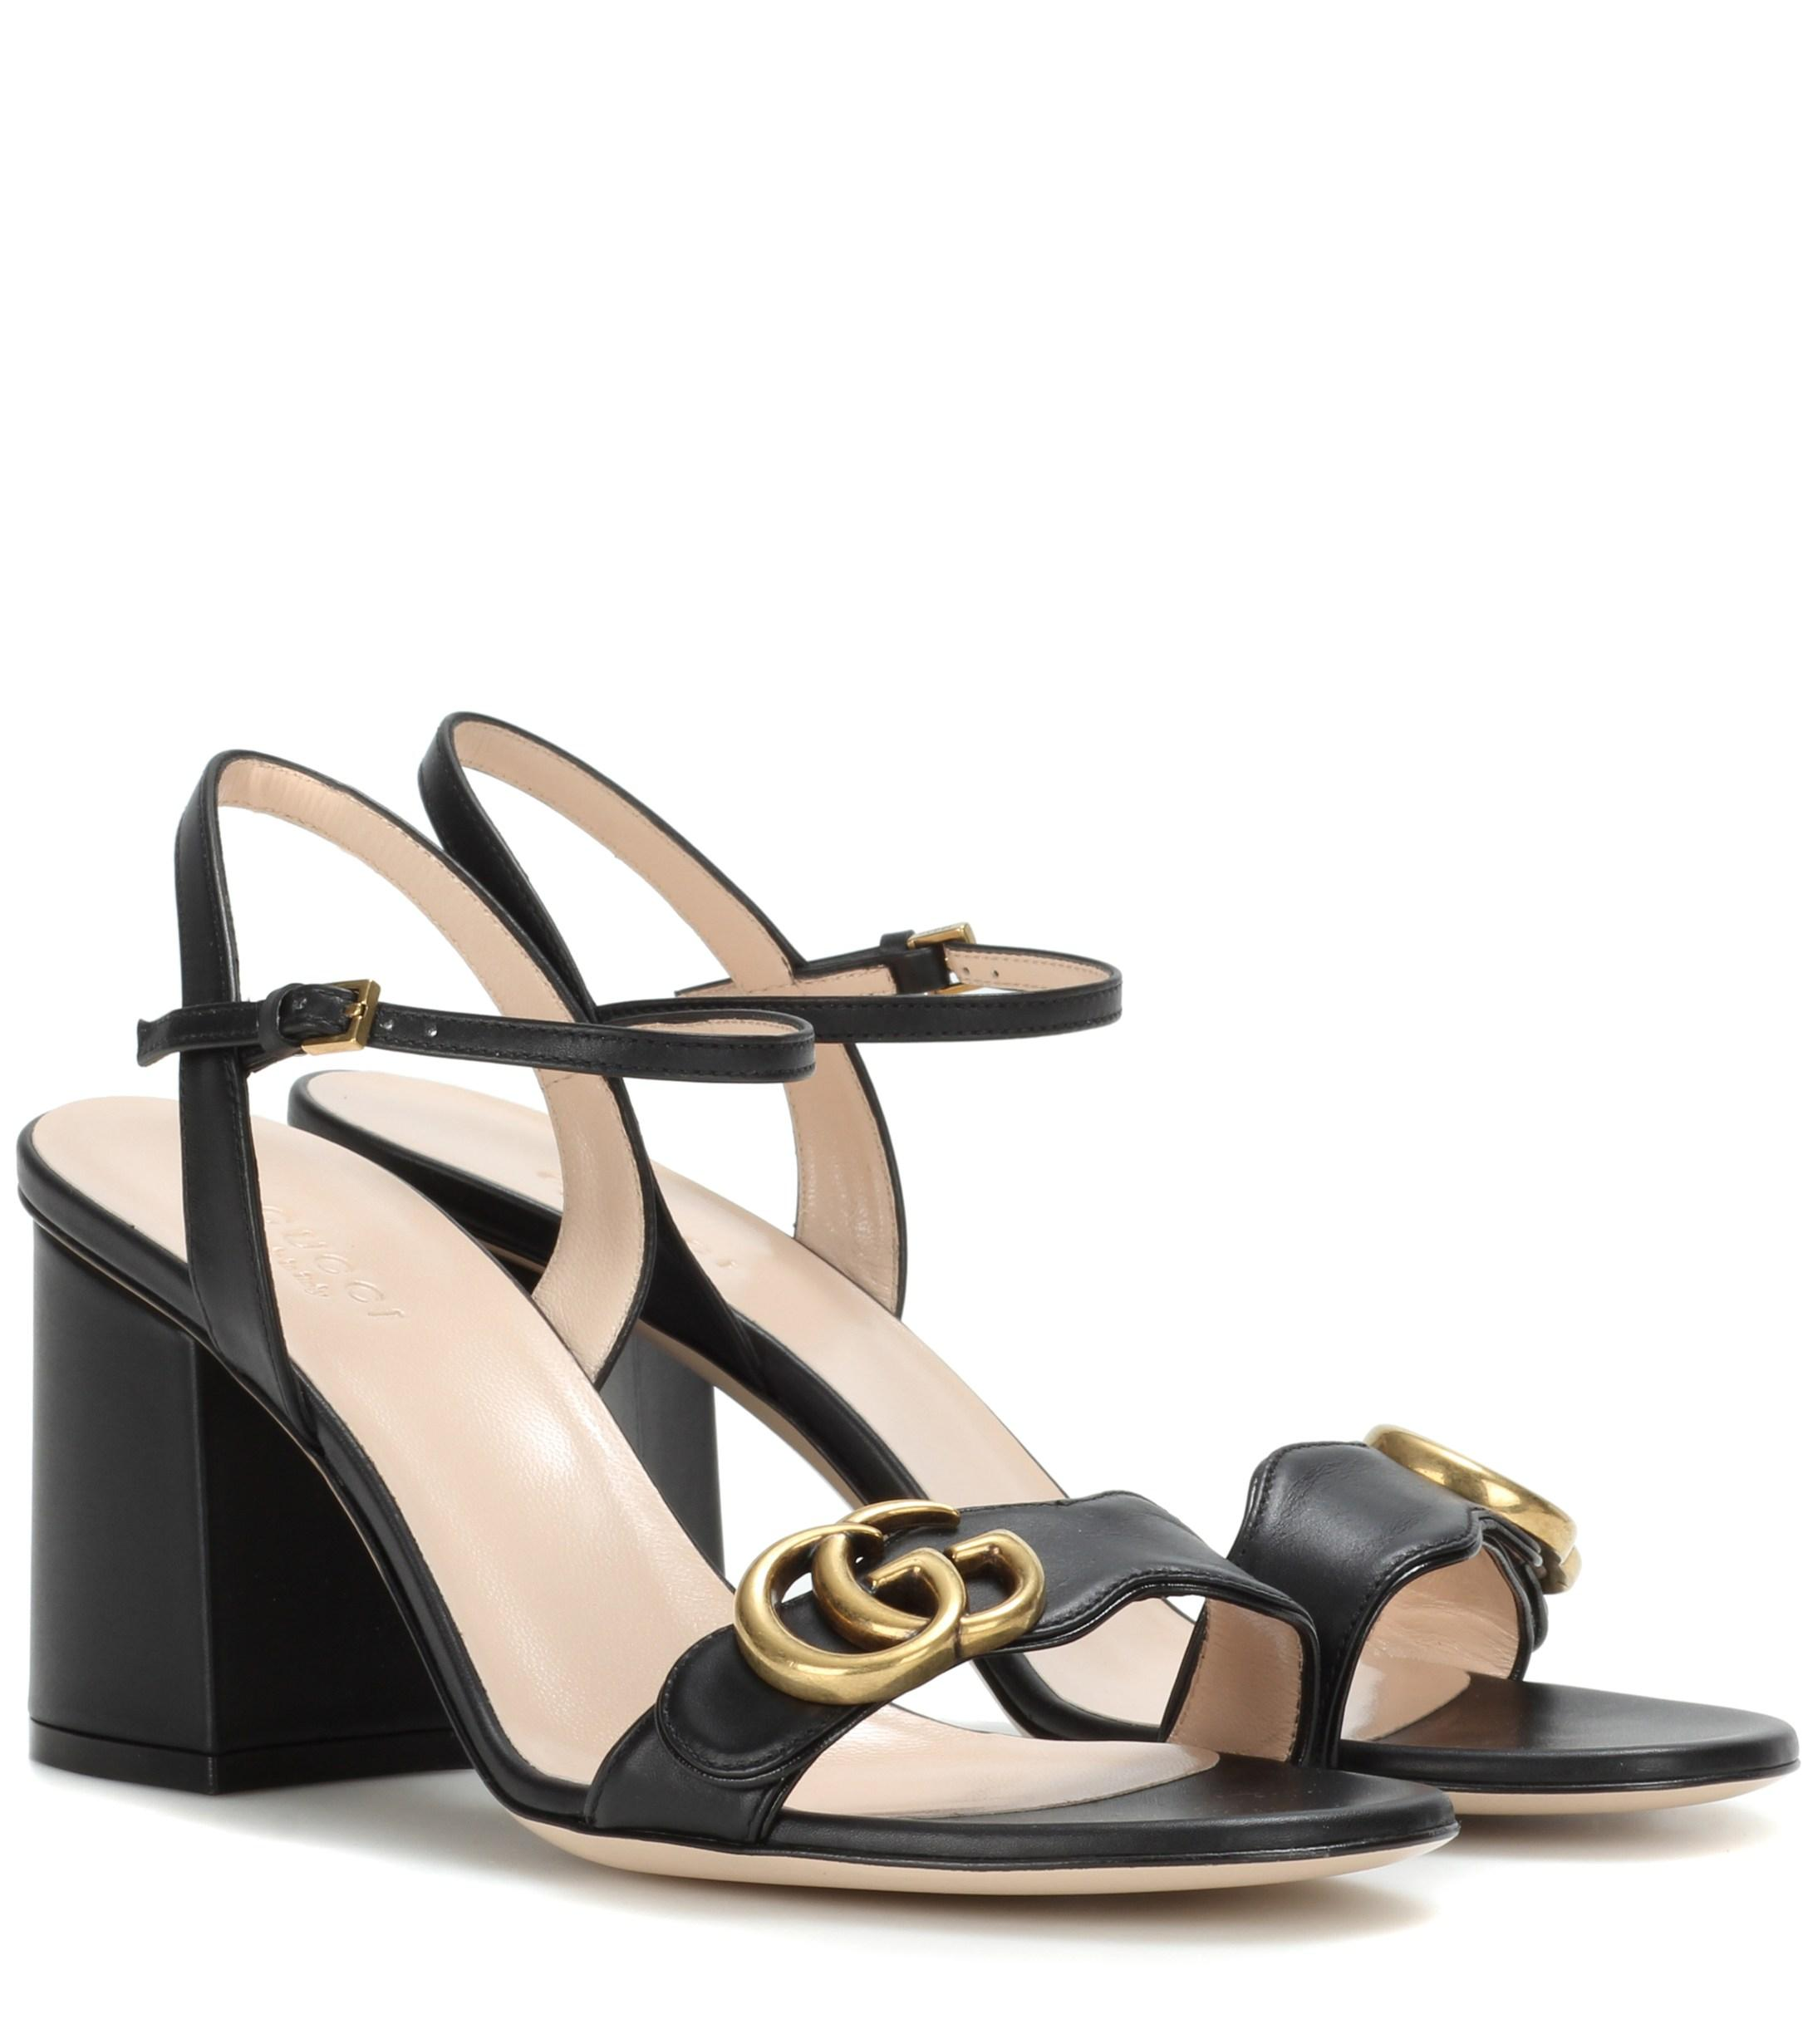 22dd183329d Gucci Leather Sandals in Black - Lyst